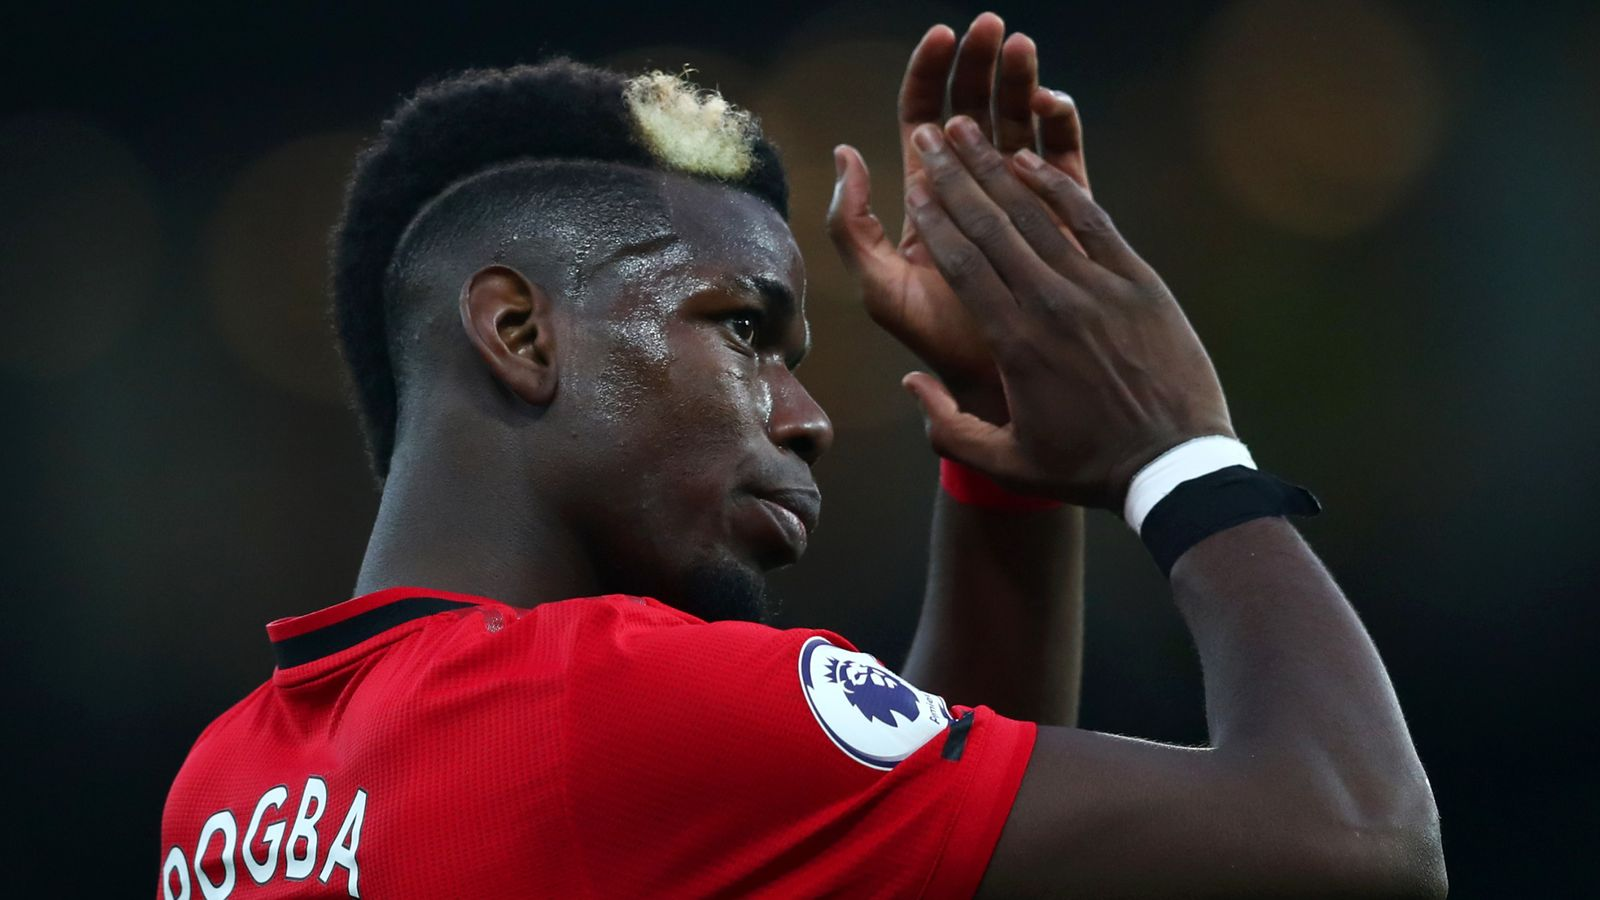 Paul Pogba's Manchester United future: Key questions for Old Trafford chiefs - Sky Sports